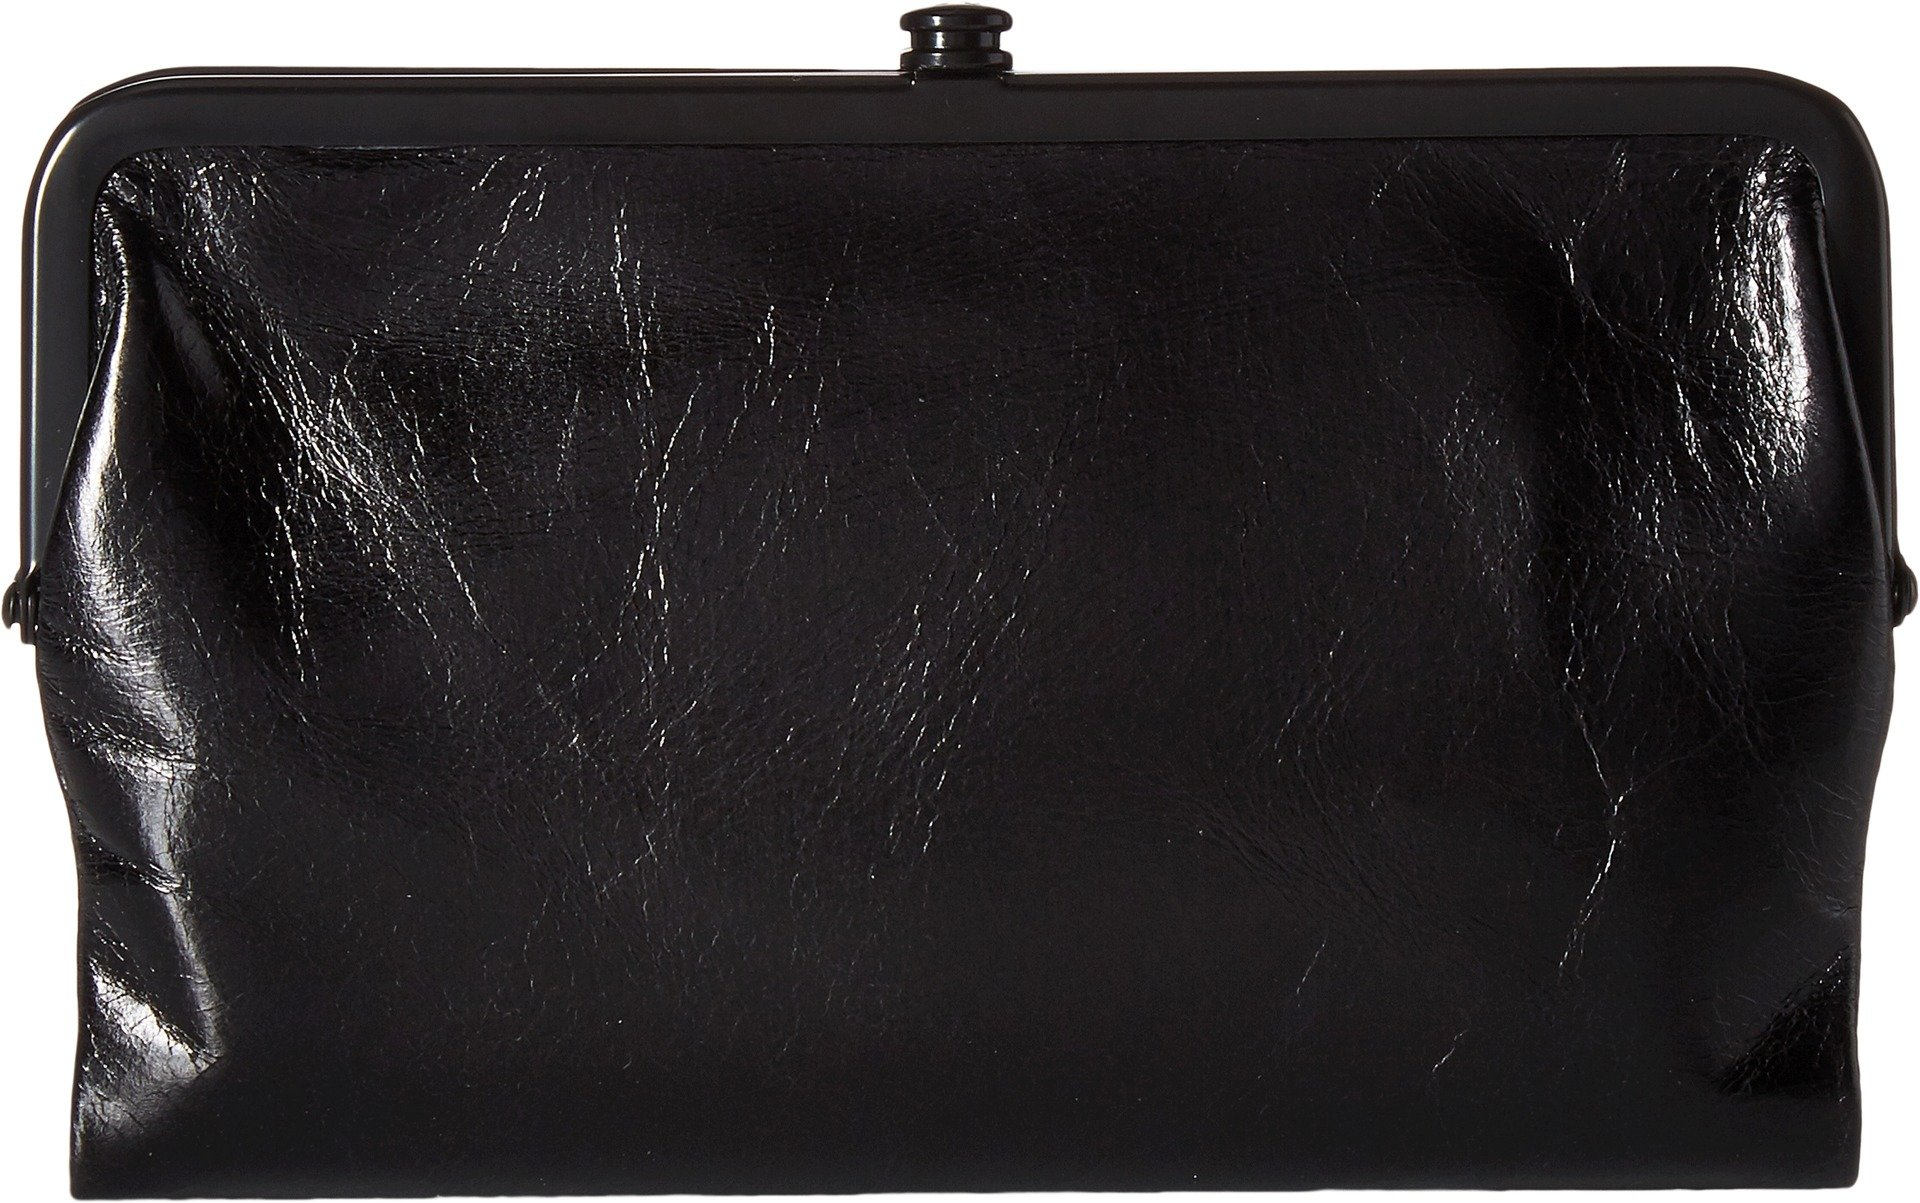 Hobo Womens Glory Vintage Leather Clutch Wallet (Black) by HOBO